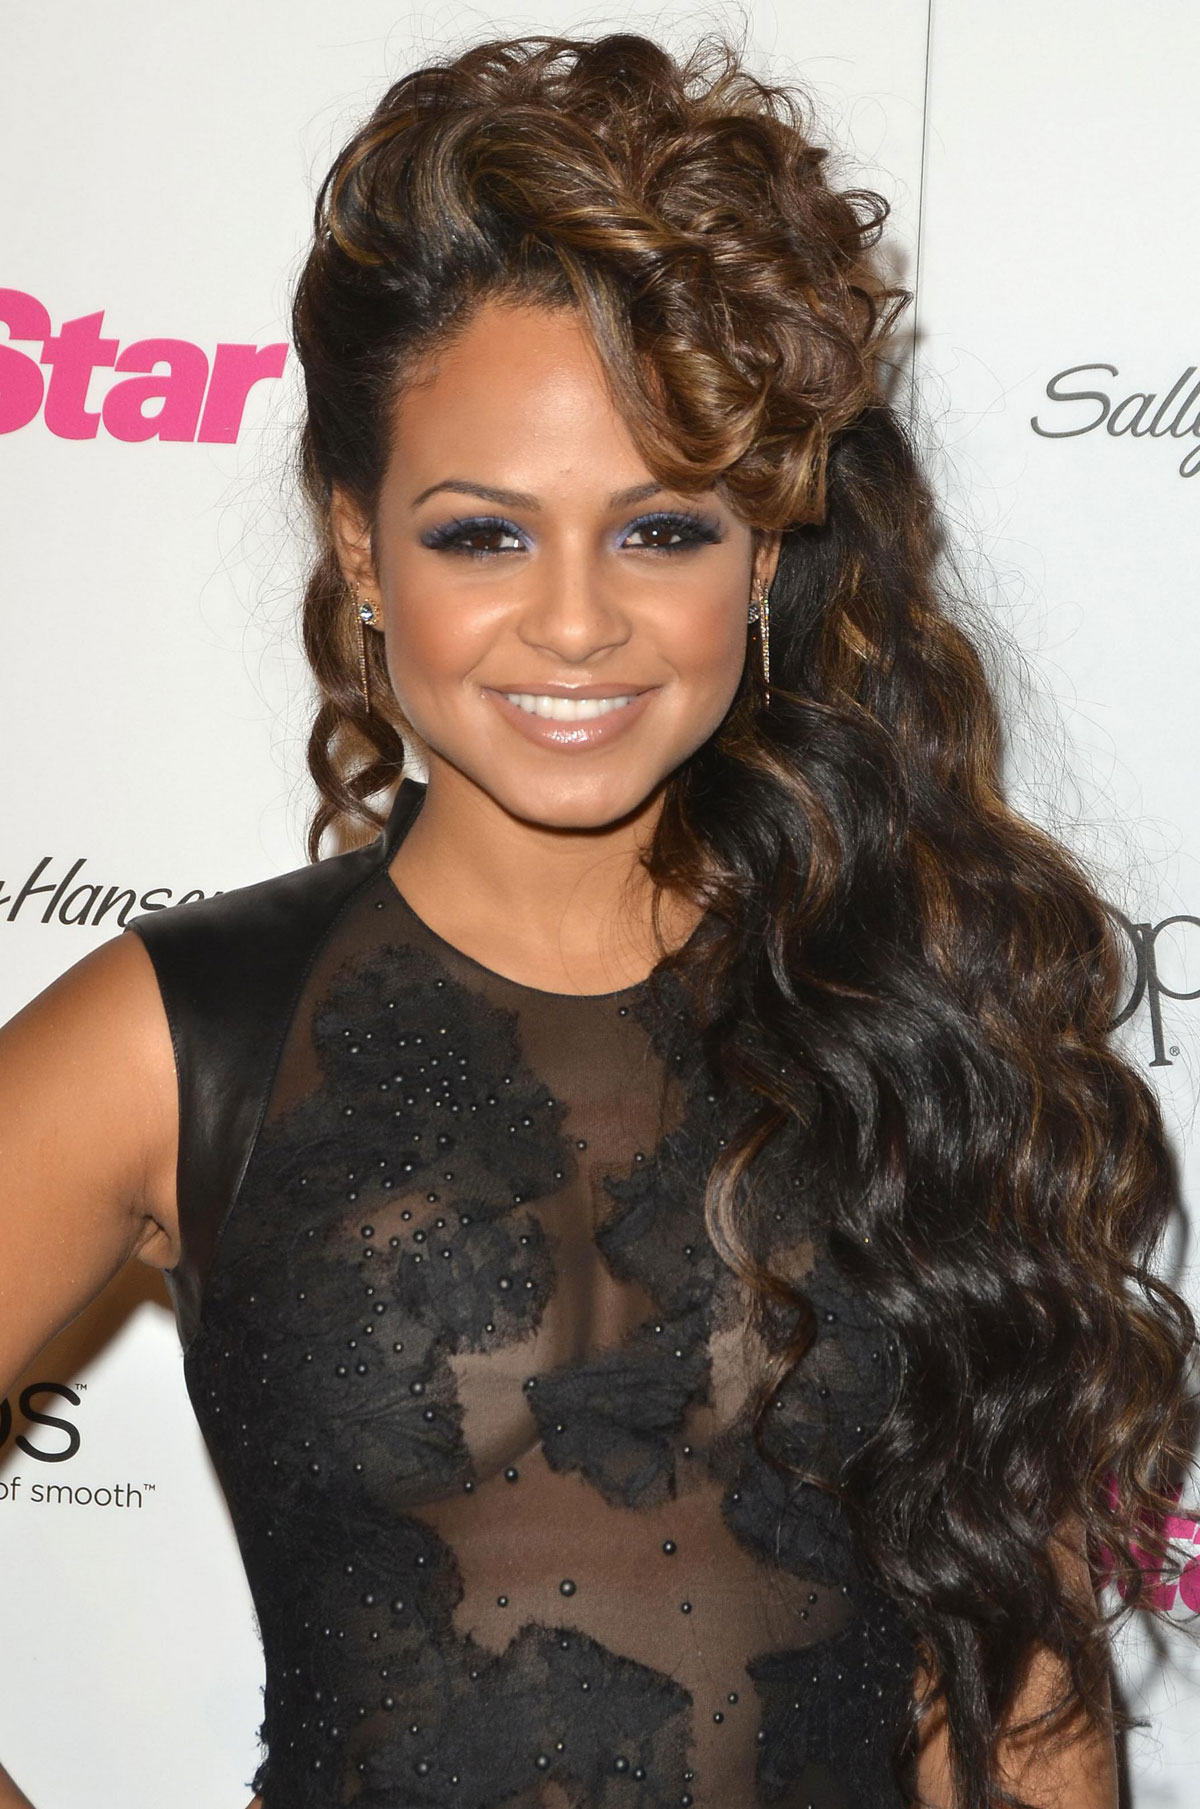 Christina milian Wallpaper 7 With 1200 x 1809 Resolution ( 352kB )